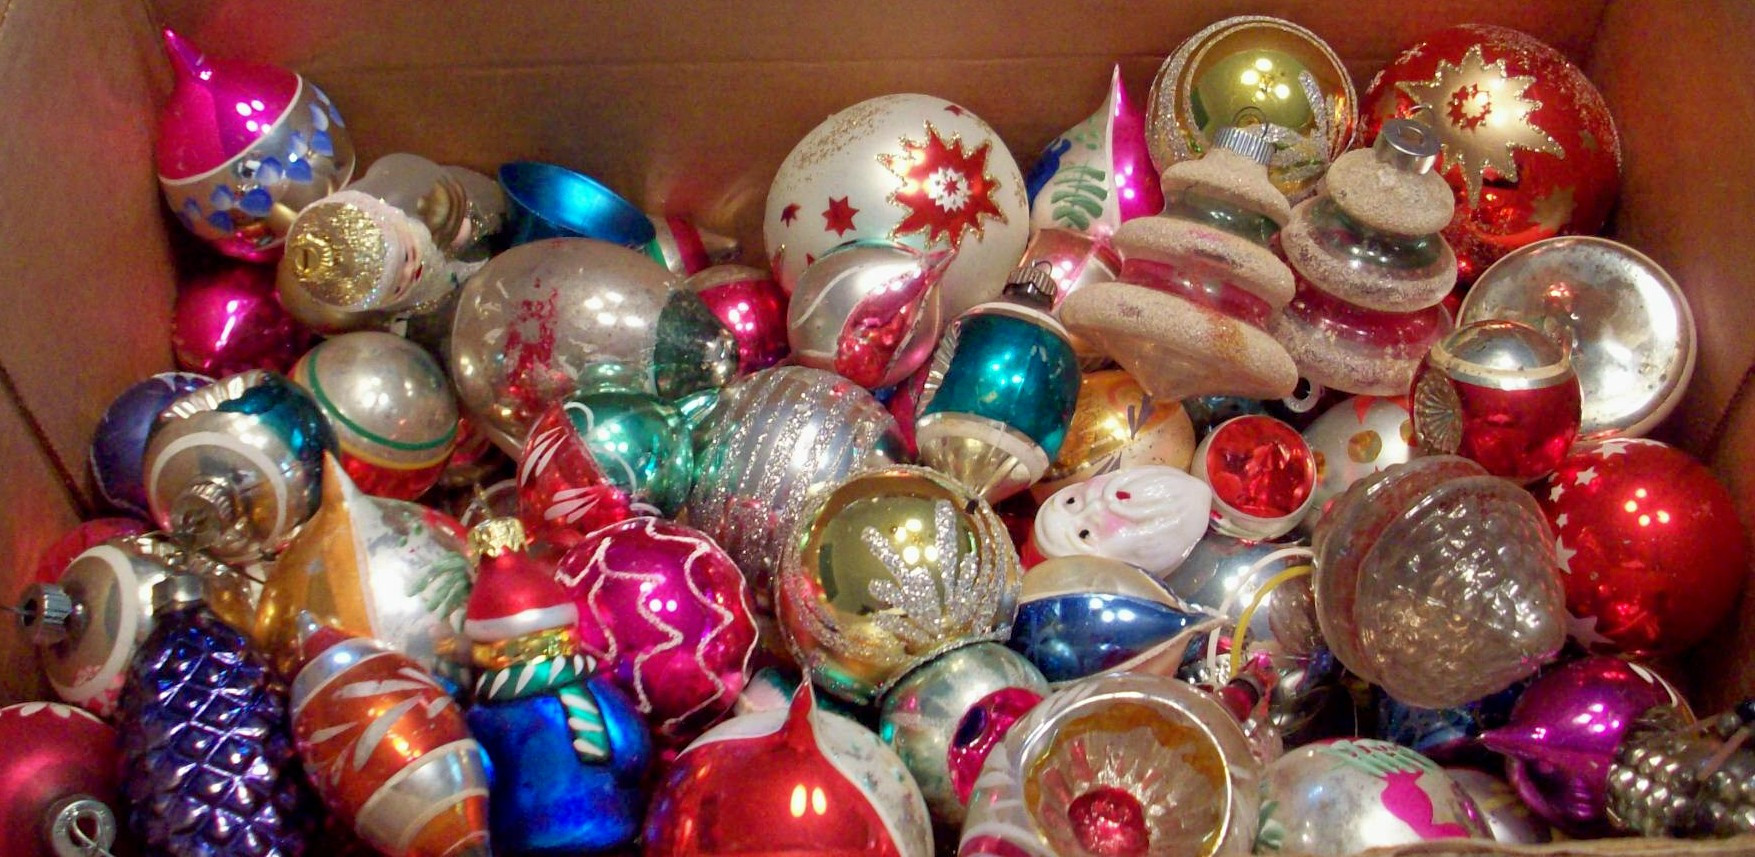 Elegant Old Fashioned Christmas ornaments Old Fashioned Christmas ornaments Of Adorable 35 Pics Old Fashioned Christmas ornaments